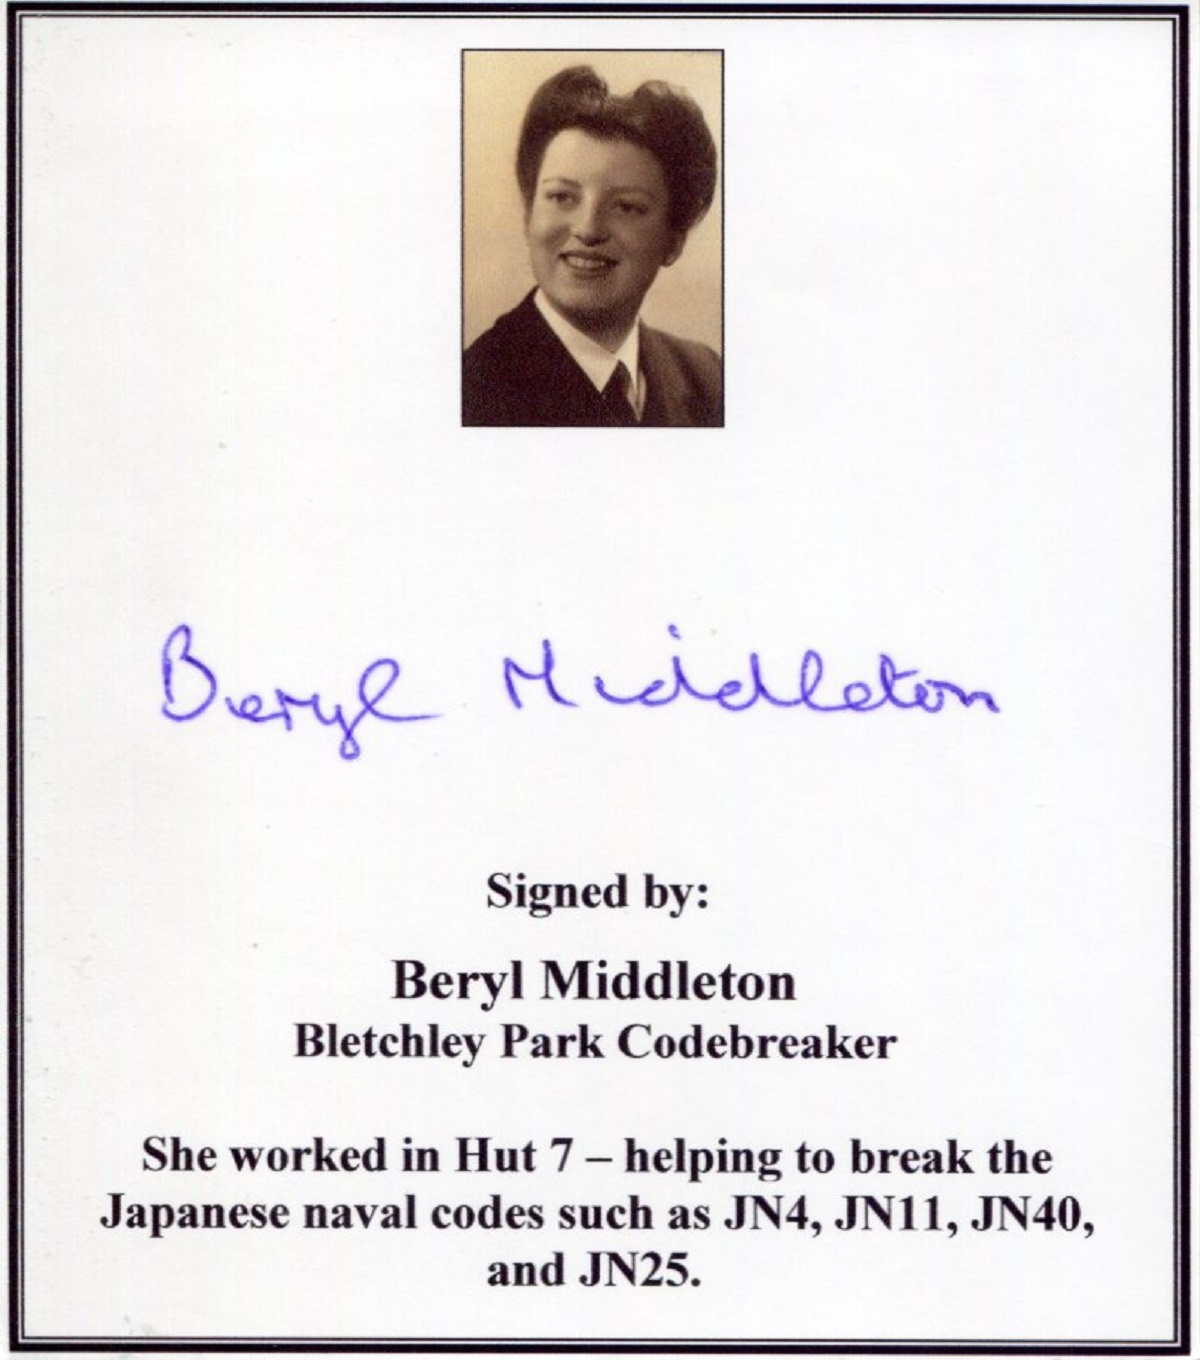 Bletchley Park codebreaker Beryl Middleton signed bookplate, ideal for either a book or display.